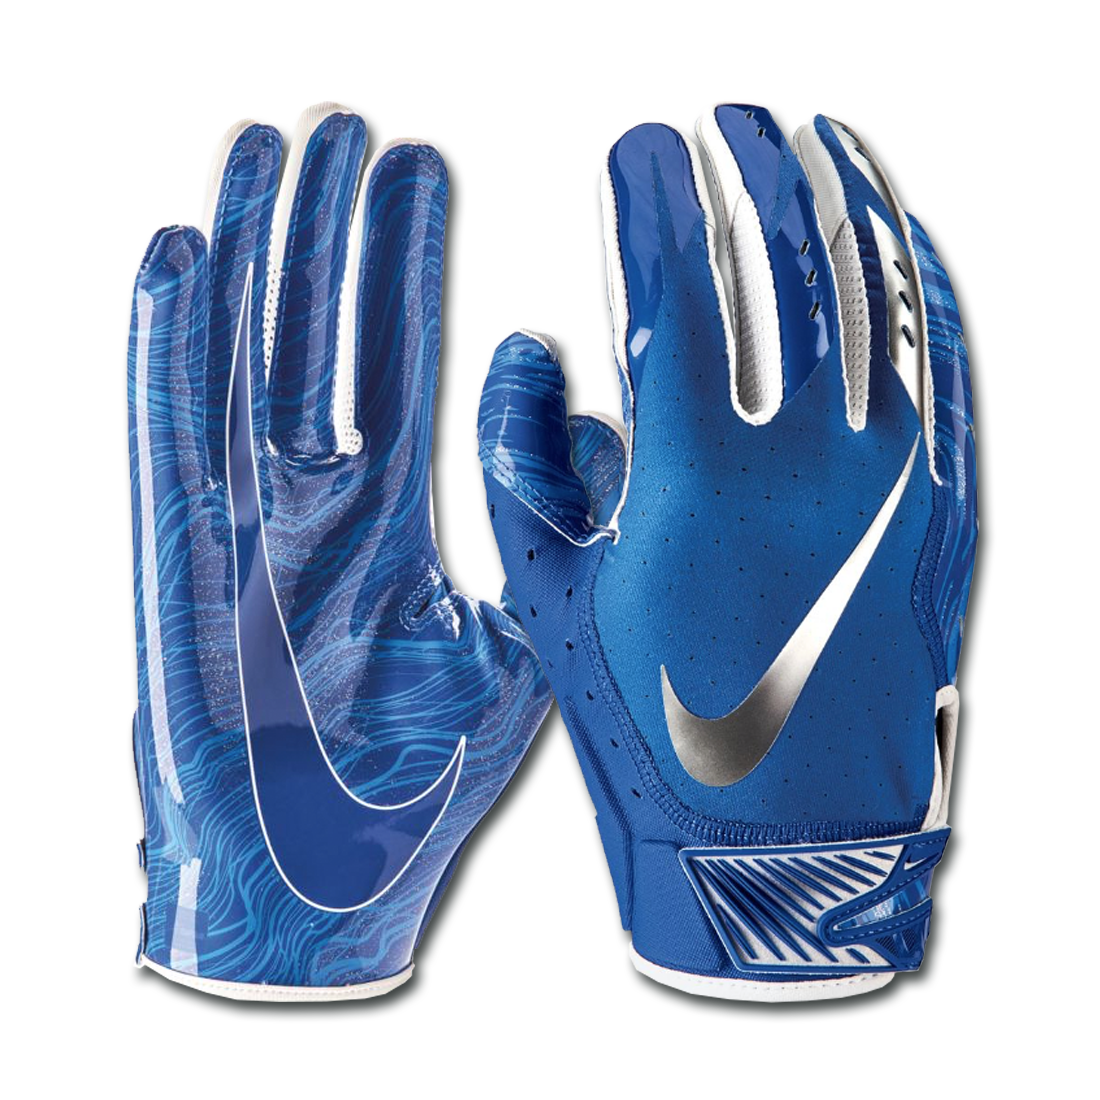 Nike Vapor Jet 5 0 Royal Blue Teamzone Footballshop